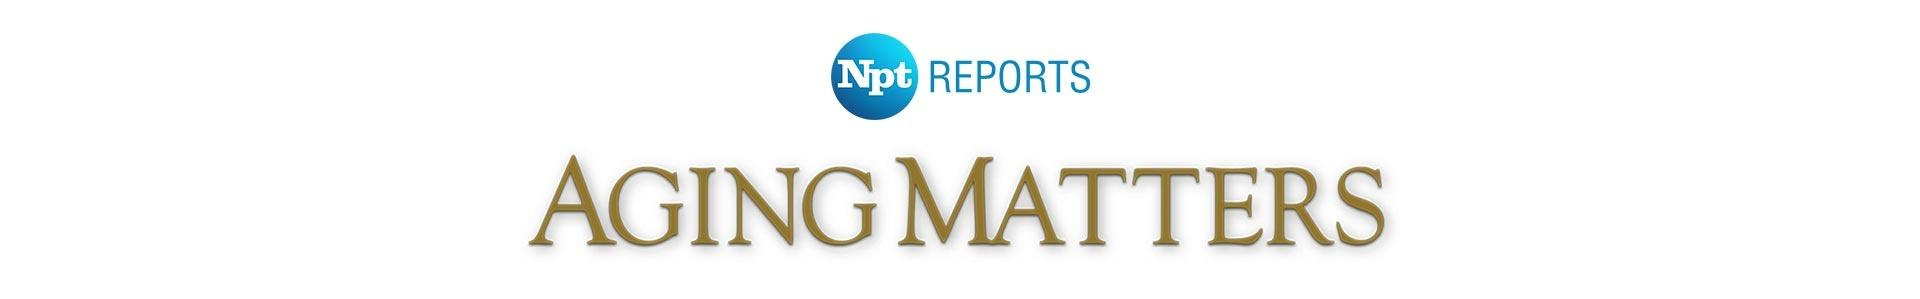 NPT Reports Aging Matters